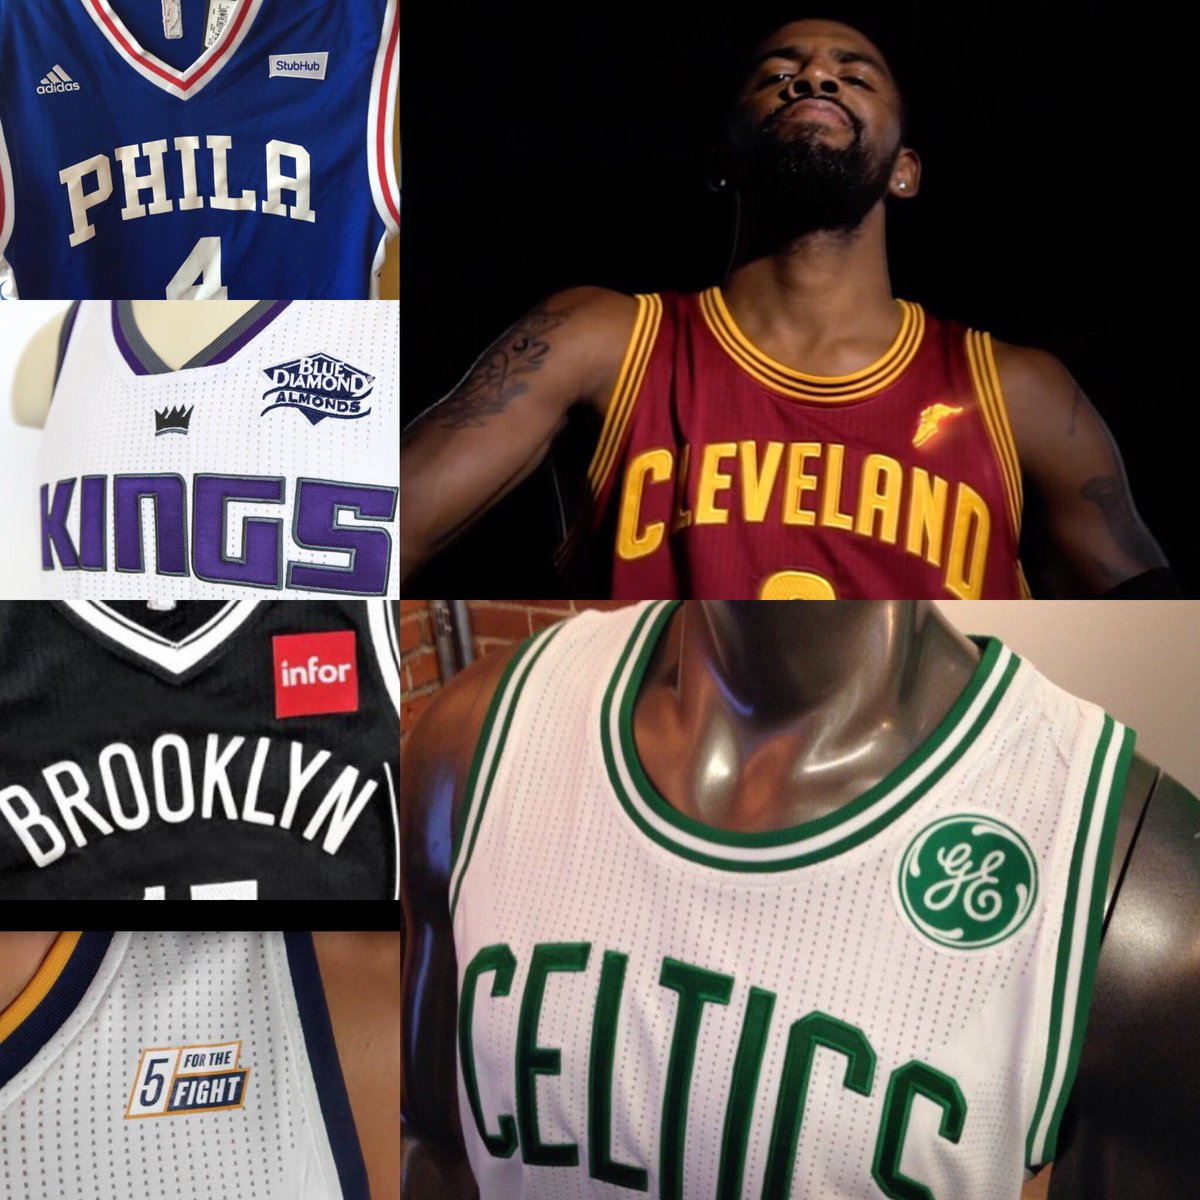 a1040146f4aa Uniforms—Logos—Court Designs—Socks—Sneakers—Headbands—Mouthguards